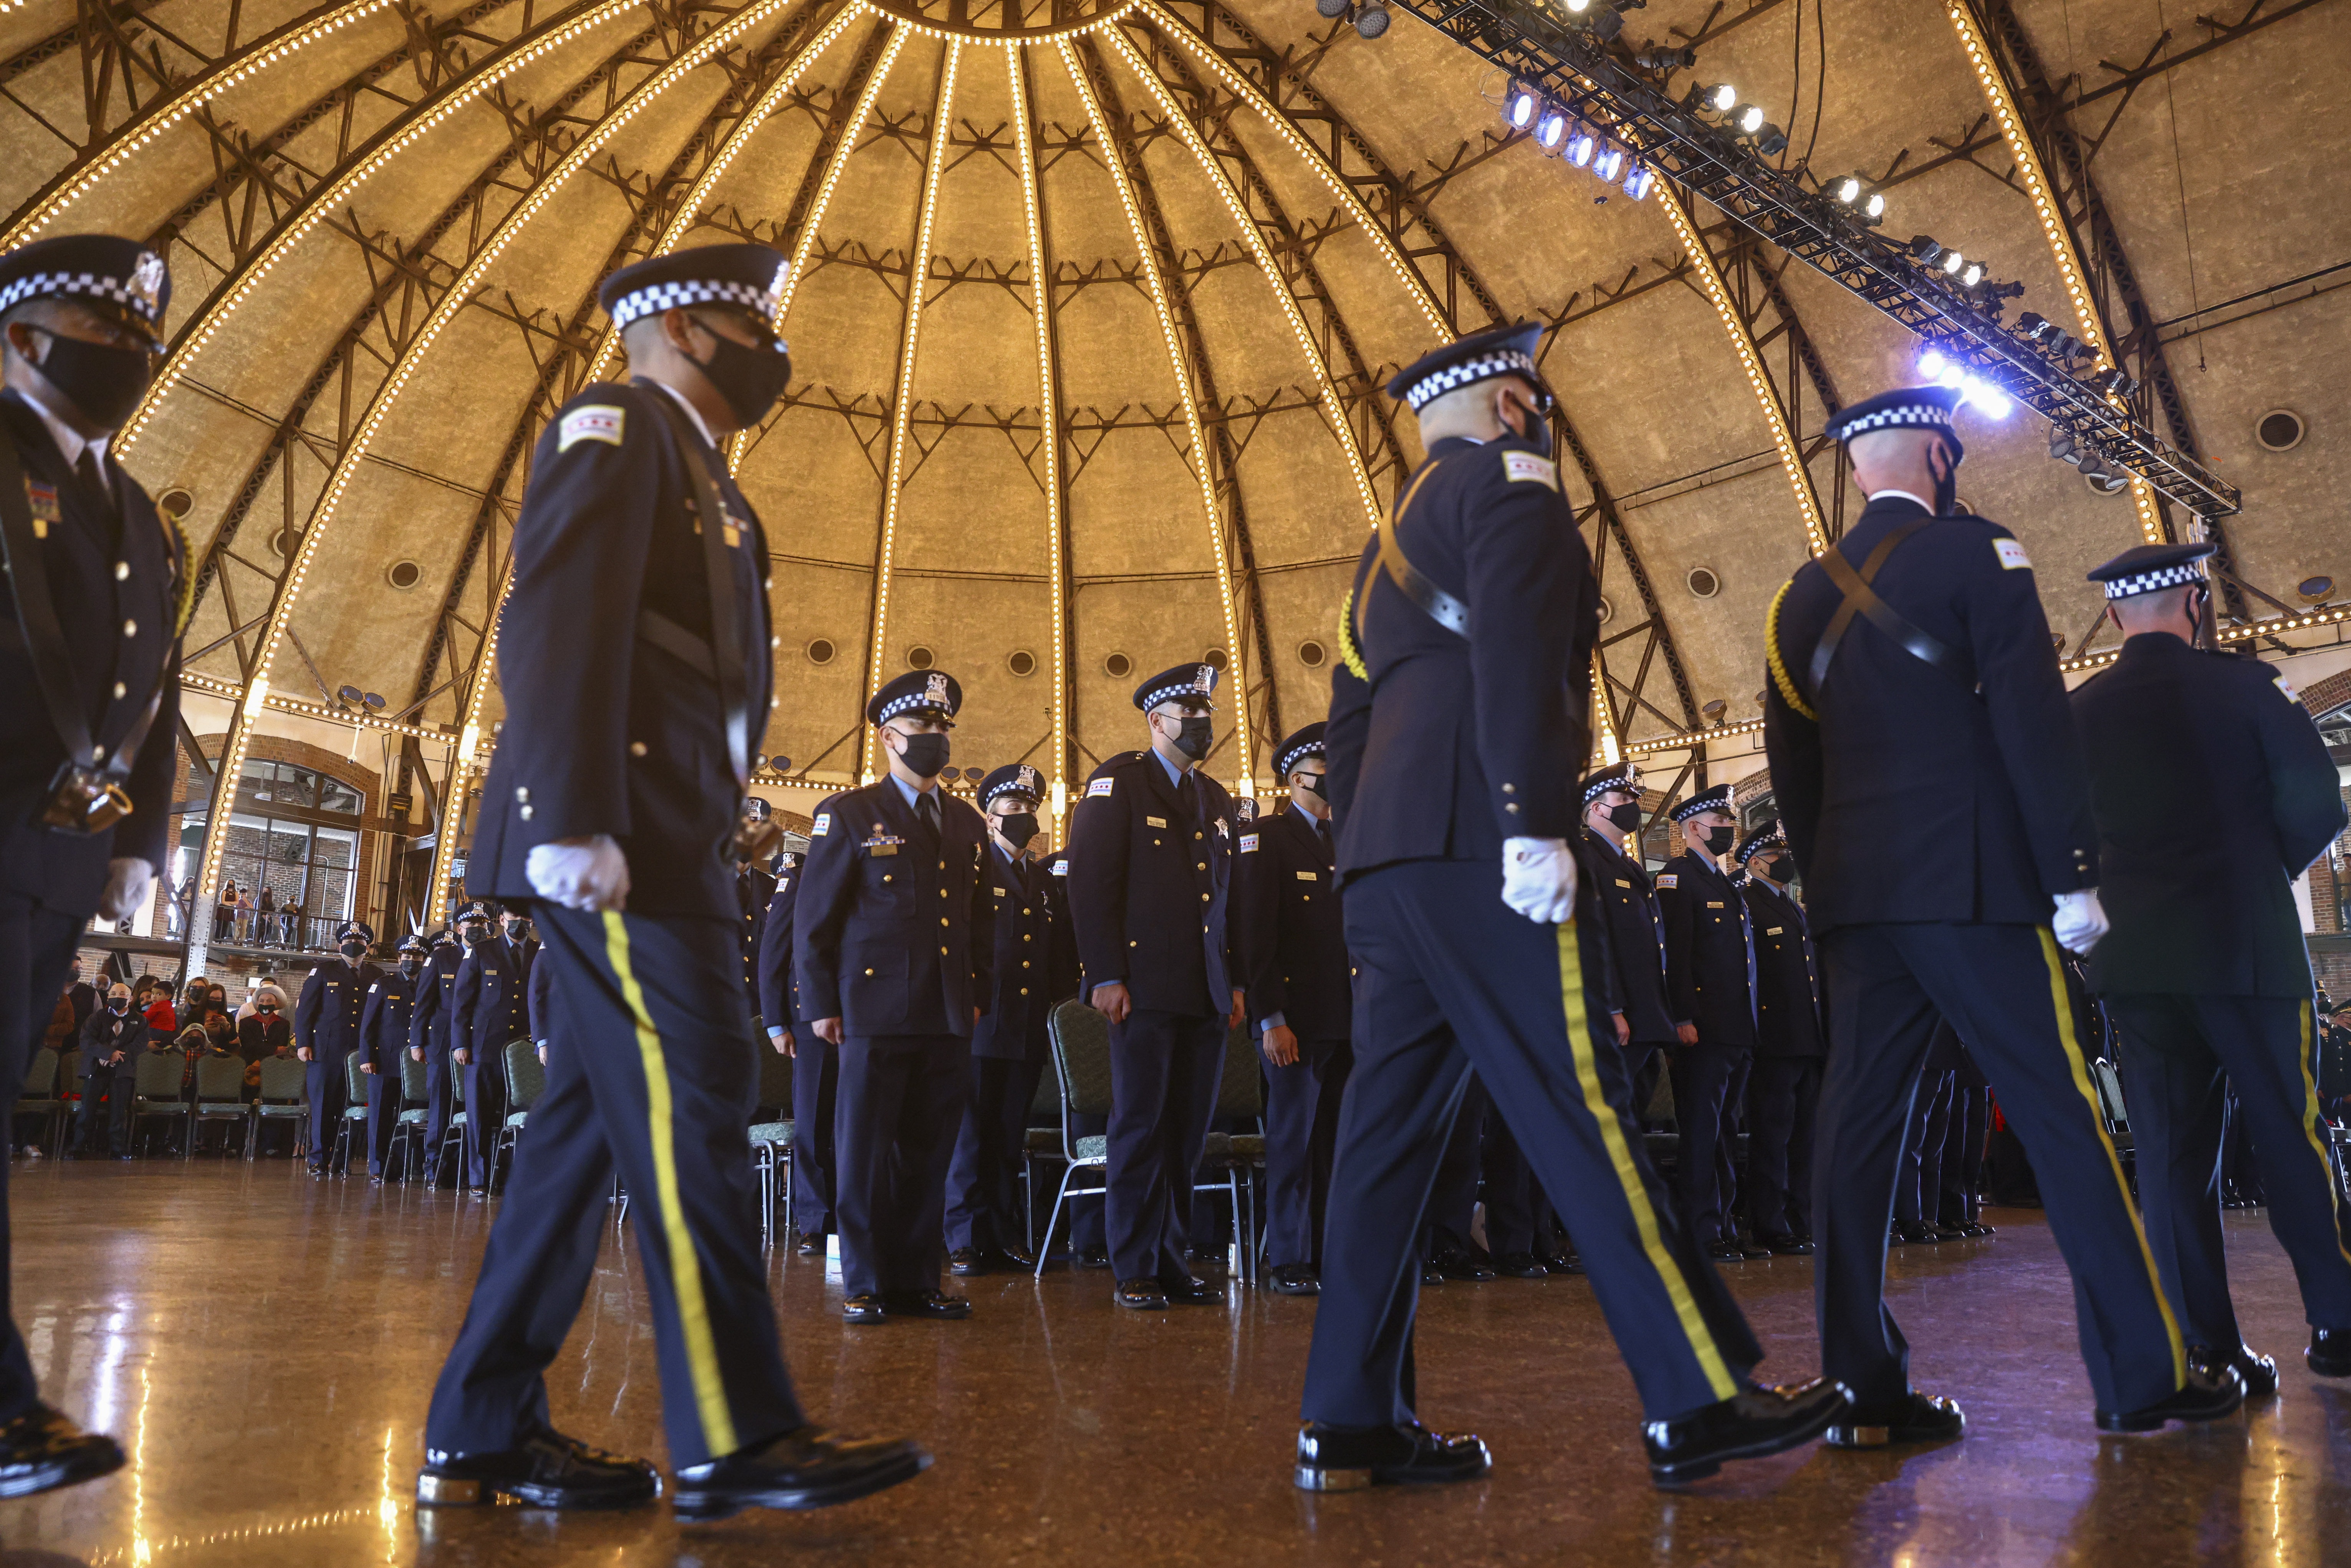 Wednesday's Chicago Police Department graduation ceremony at Navy Pier was the first since early in the pandemic. Newly graduated class of police officers during a graduation ceremony, Wednesday, Oct. 20, 2021 at Navy Pier. | Anthony Vazquez/Sun-Times